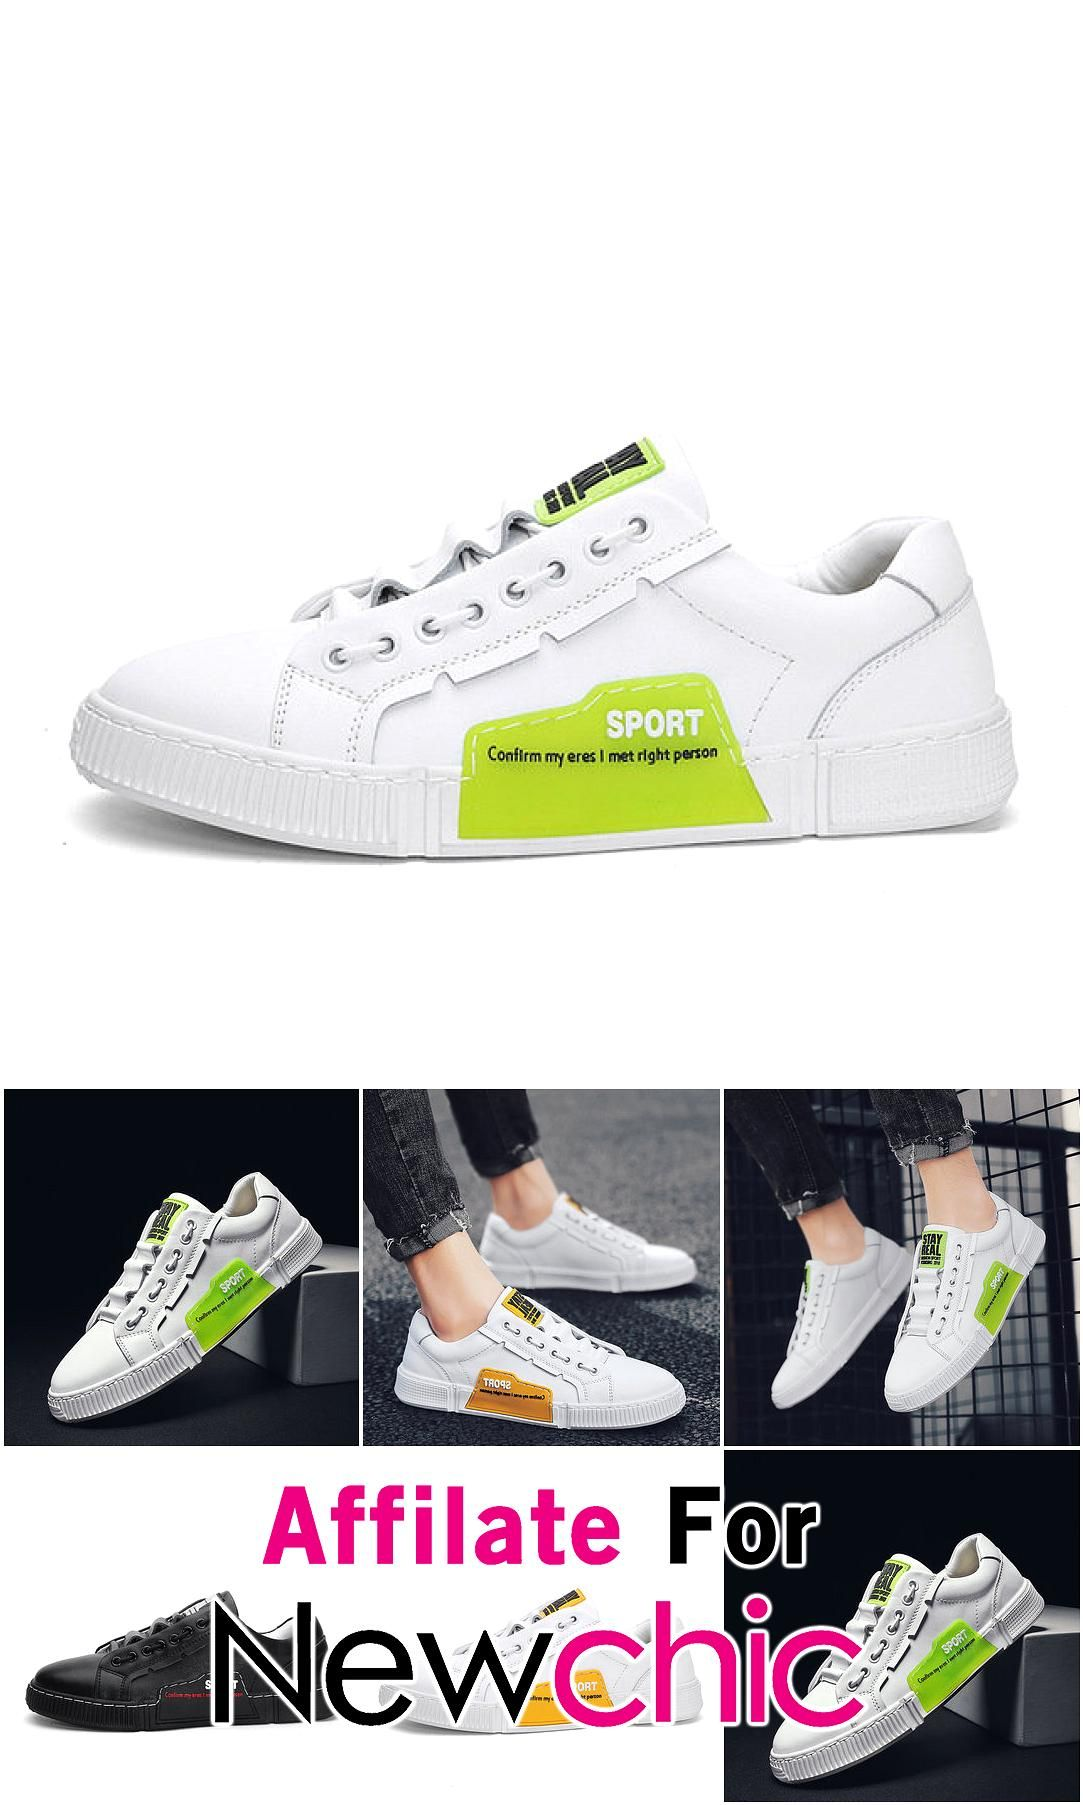 Leather New Mens Season Sports Style Casual Youth Tide Shoes Campus Tie Running White Shoes USD 39 Leather New Mens Season Sports Style Casual Youth Tide Shoes Campus Tie...